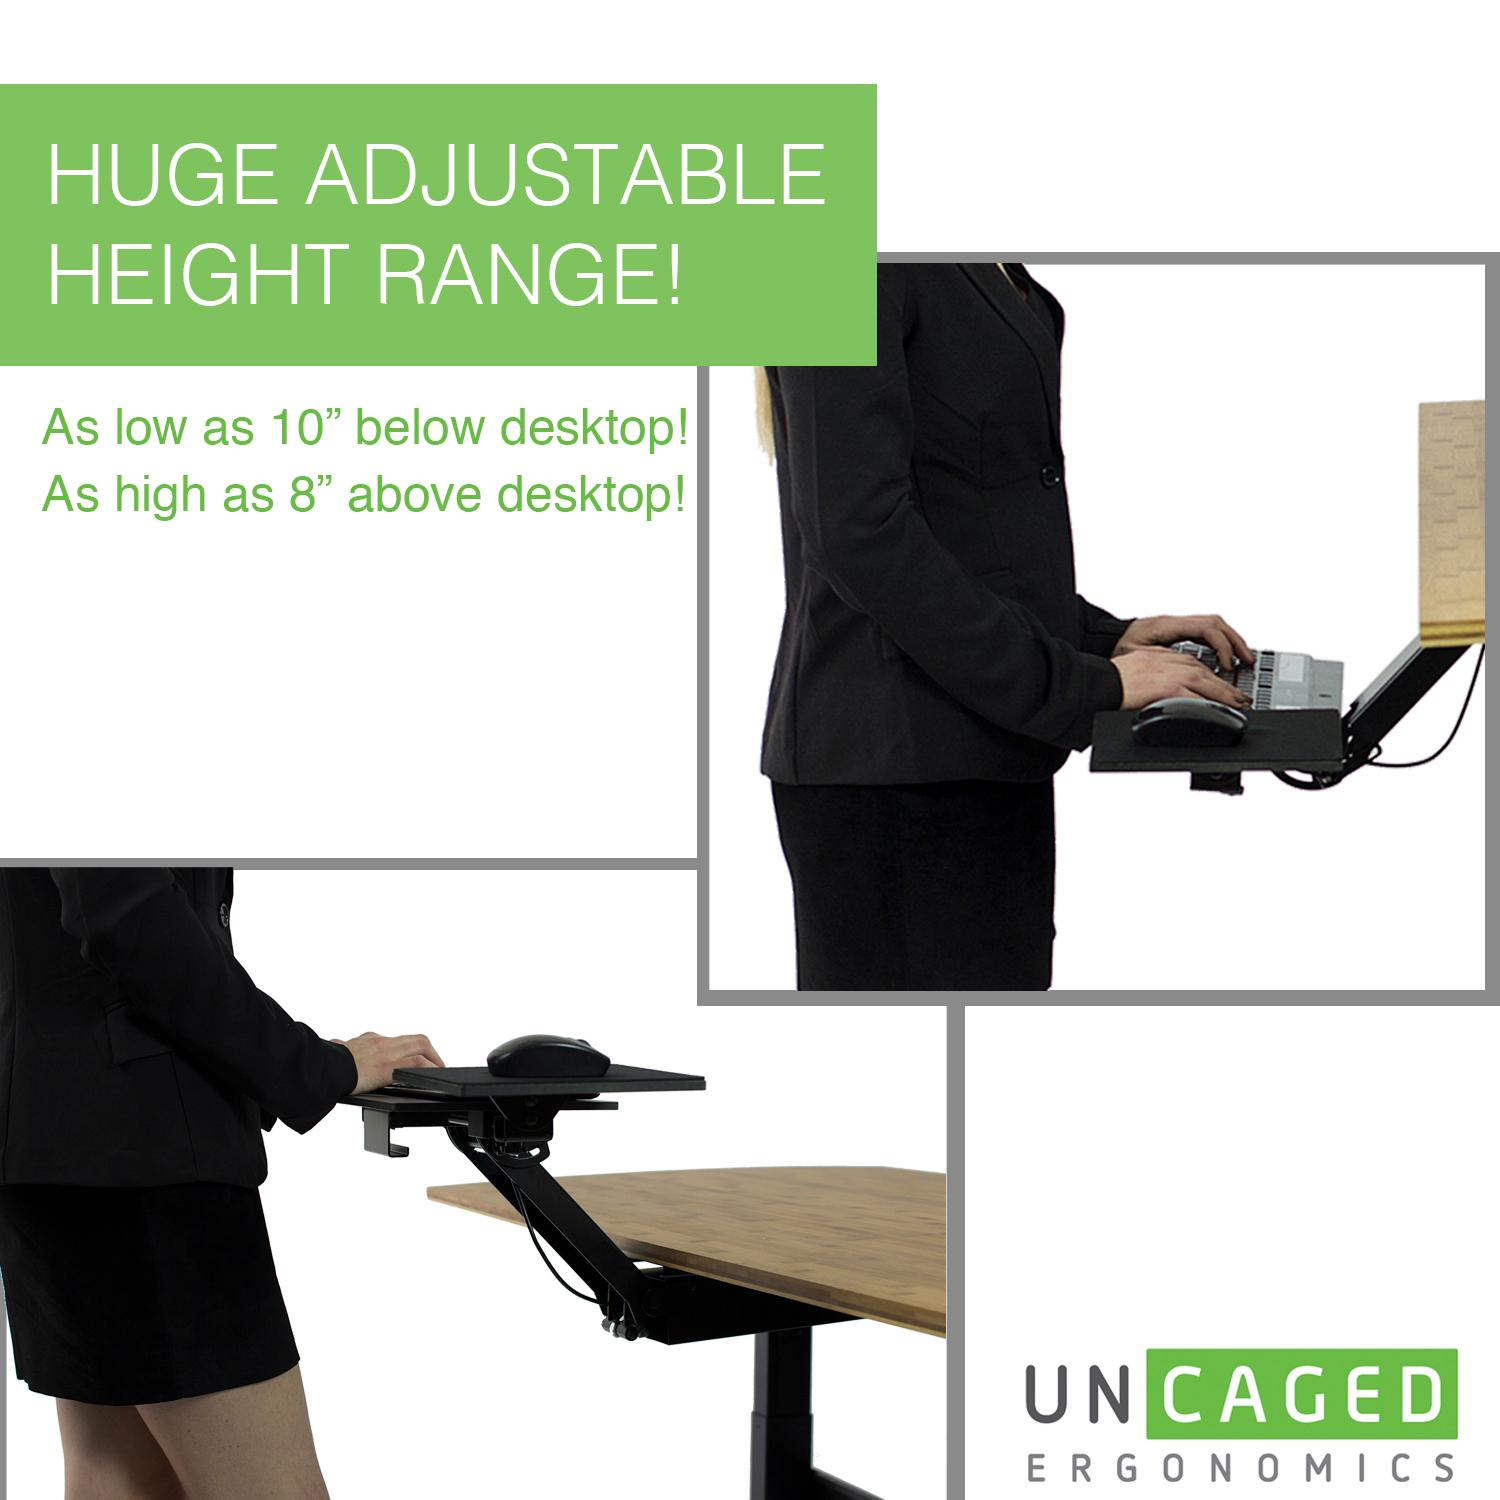 Kt2 Ergonomic Under Desk Adjustable Height Amp Angle Sit To